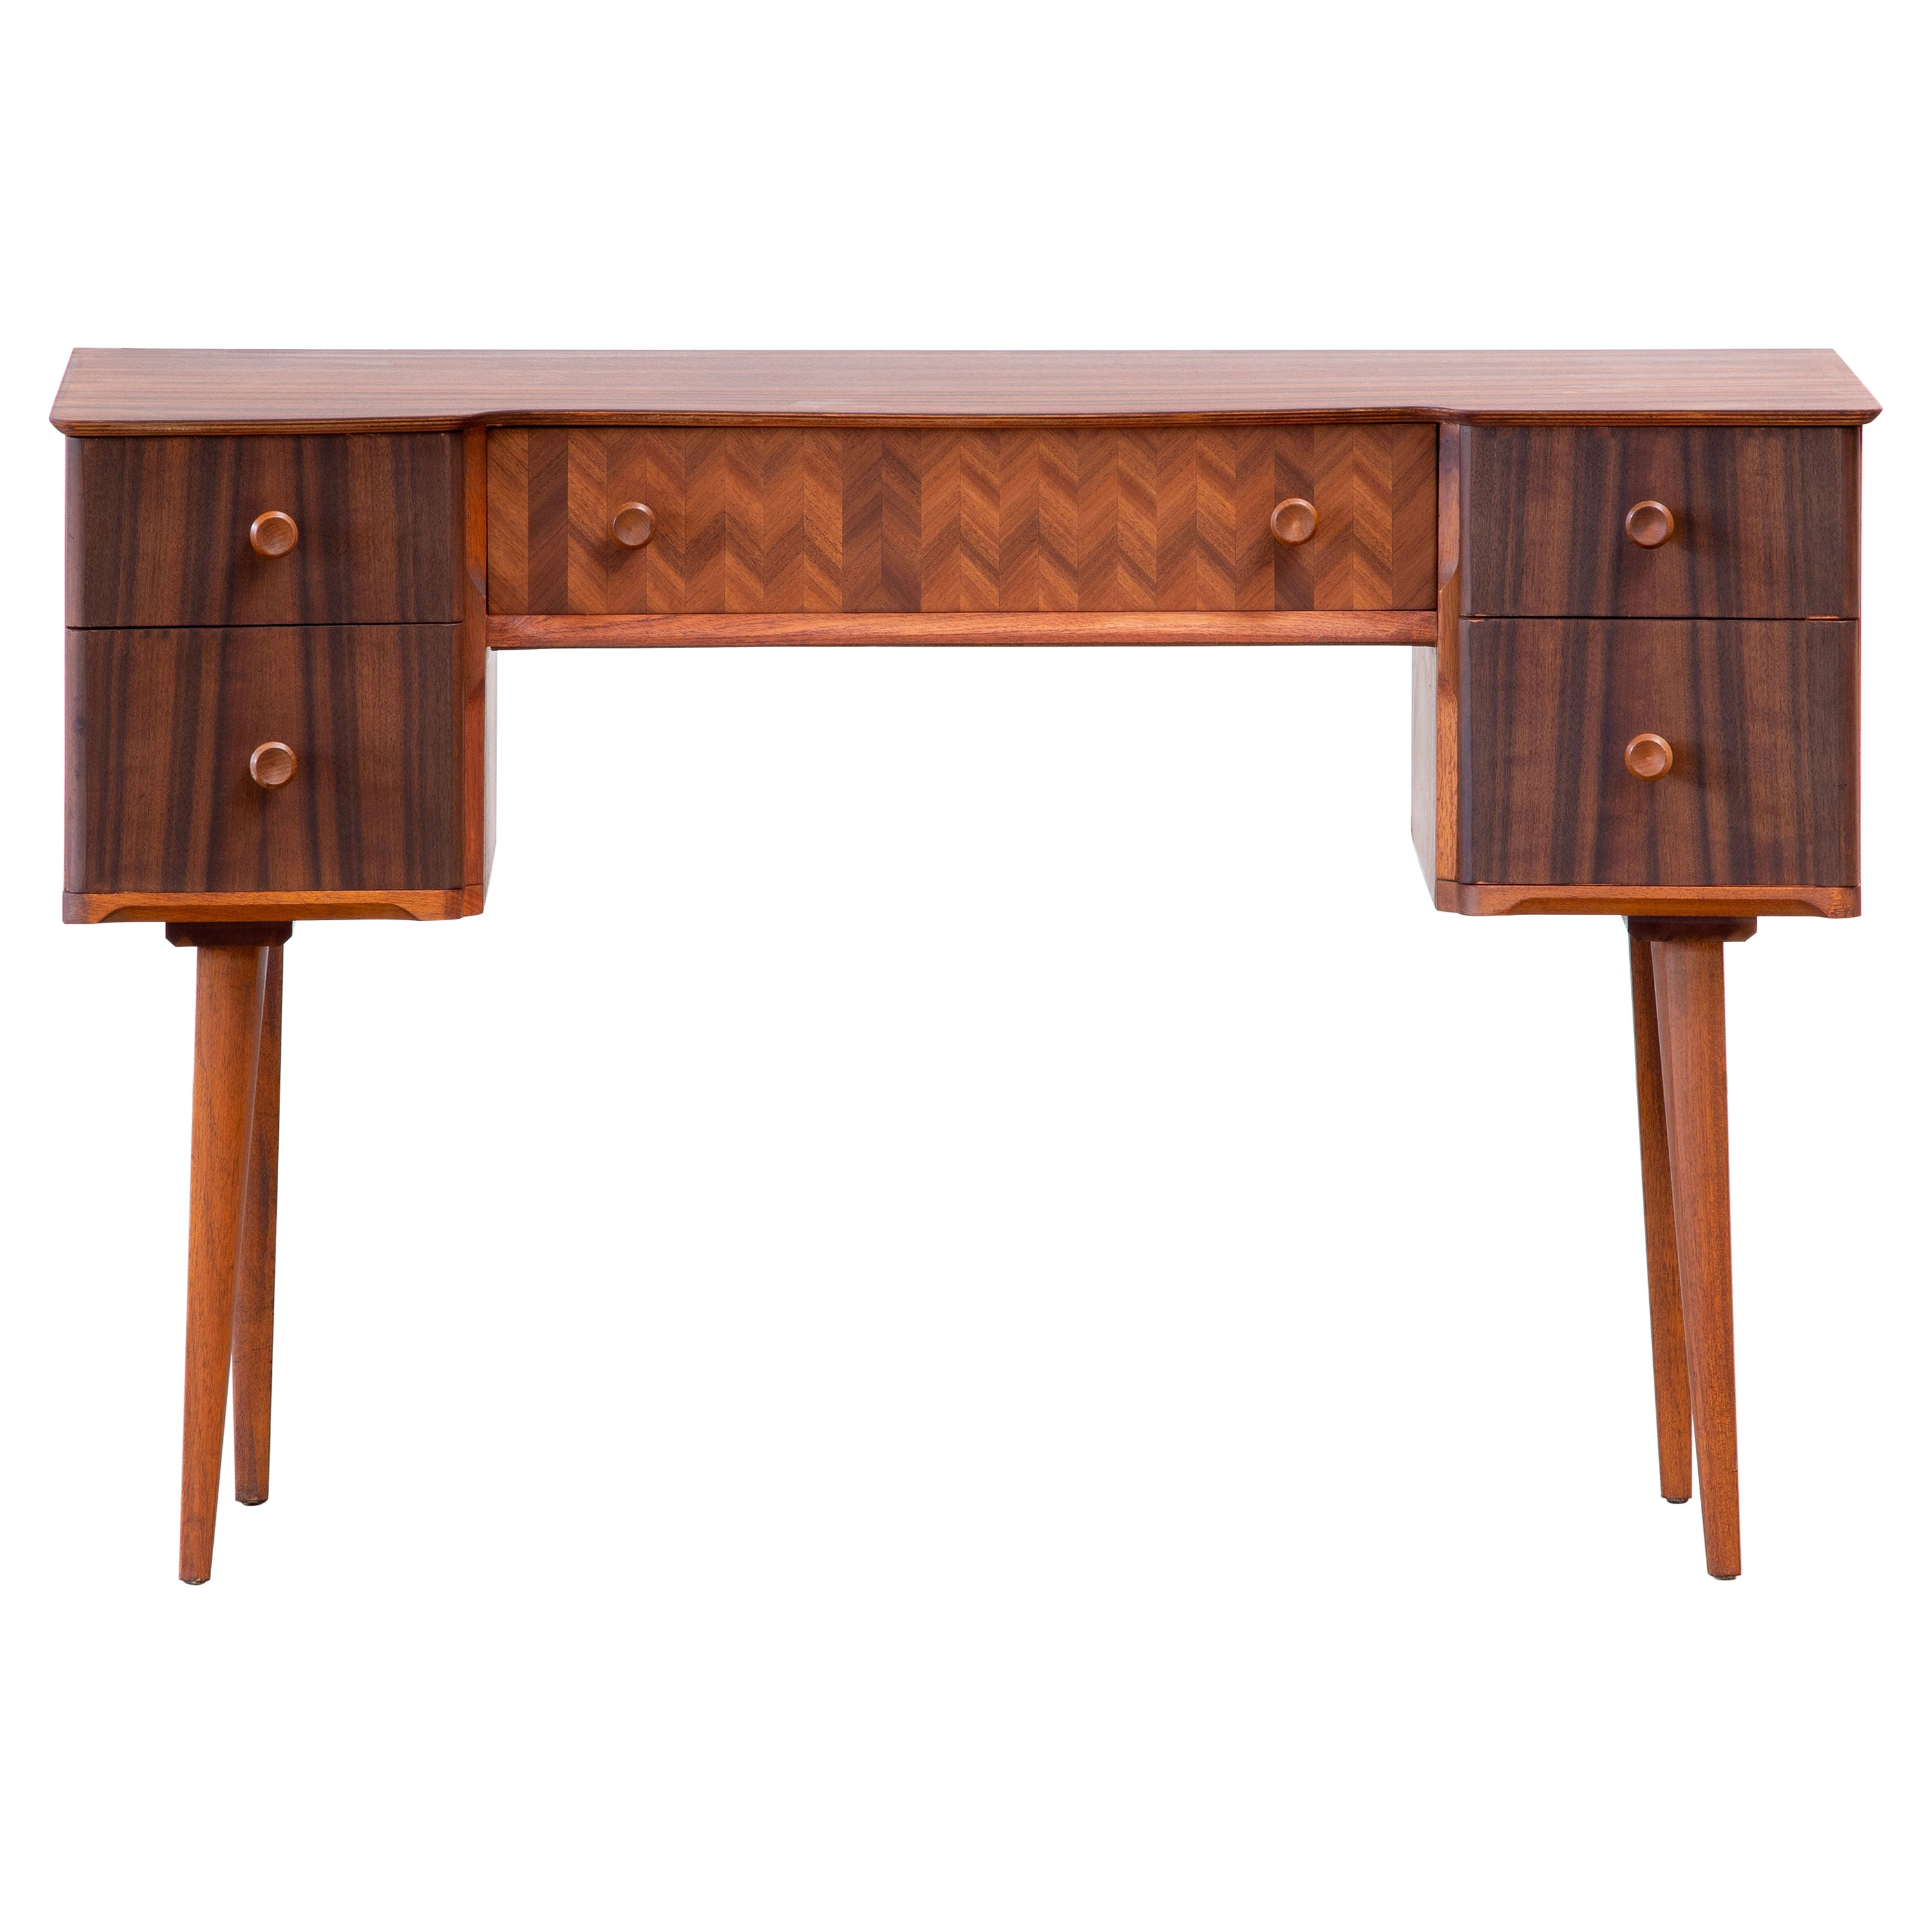 1950s Teak and Walnut Writing Desk with Marquetry